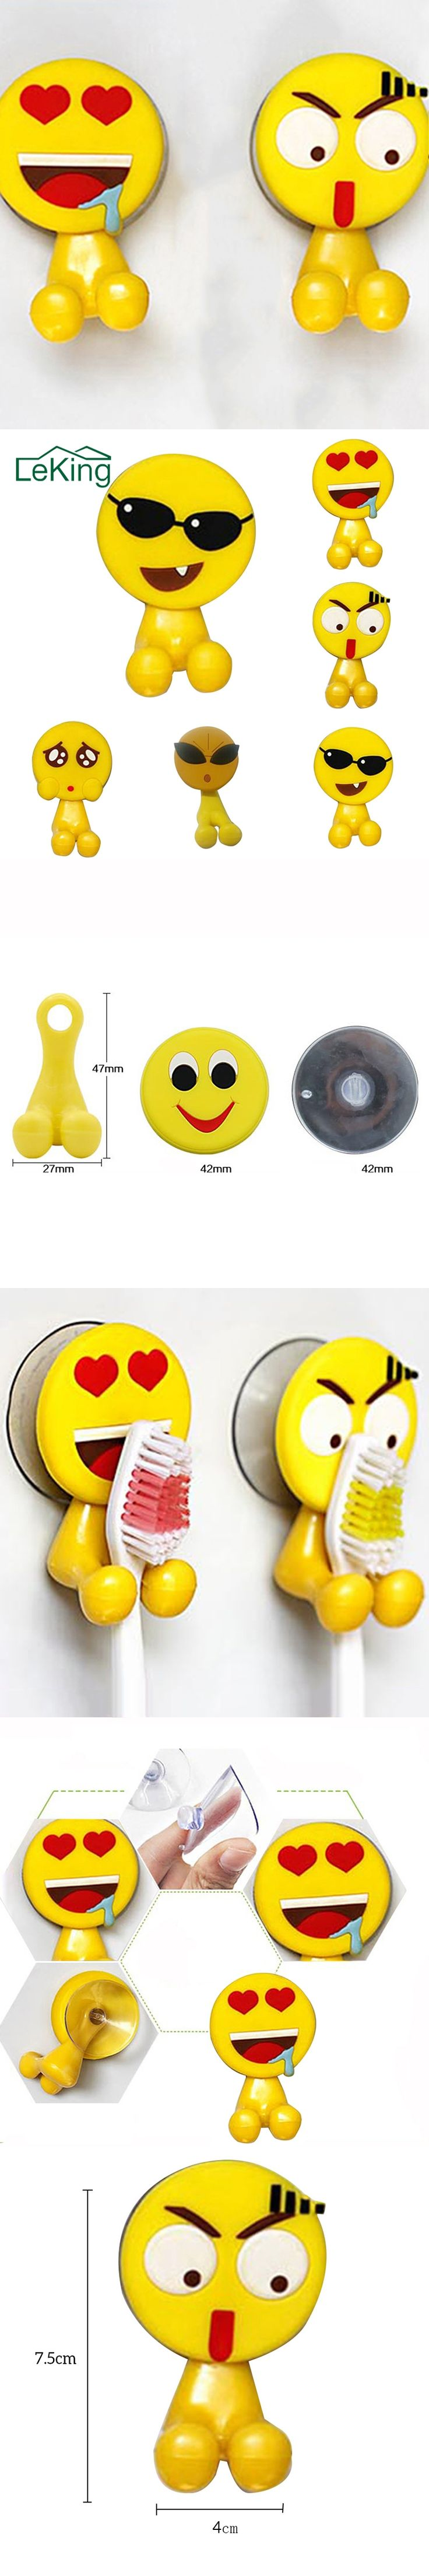 Cute Expression Toothbrush Wall Suction Bathroom Sets Cartoon Er Holder 5 Styles Kitchen Accessories